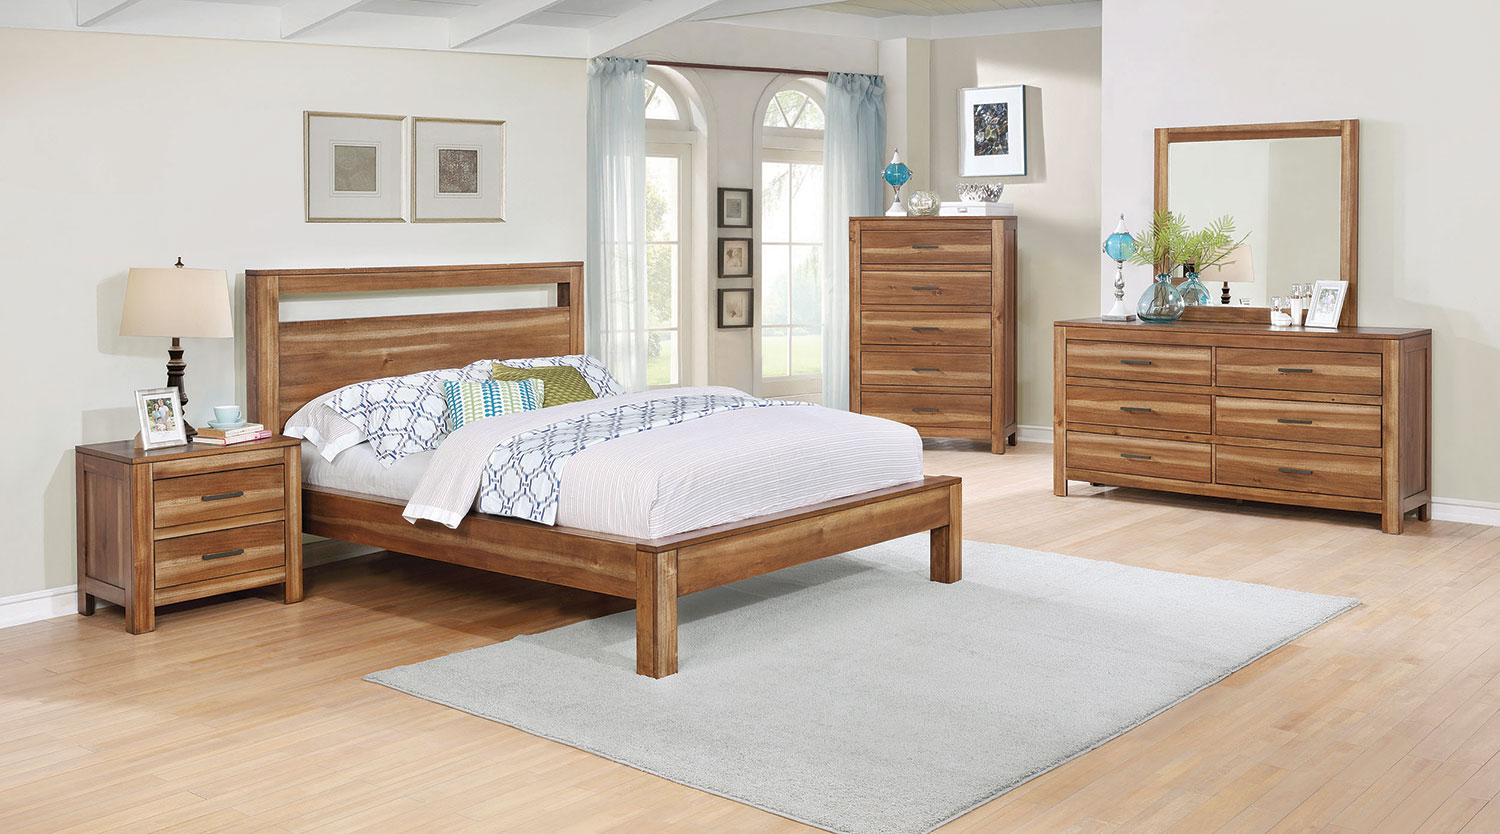 Coaster Ethan Bedroom Collection - Natural Brown